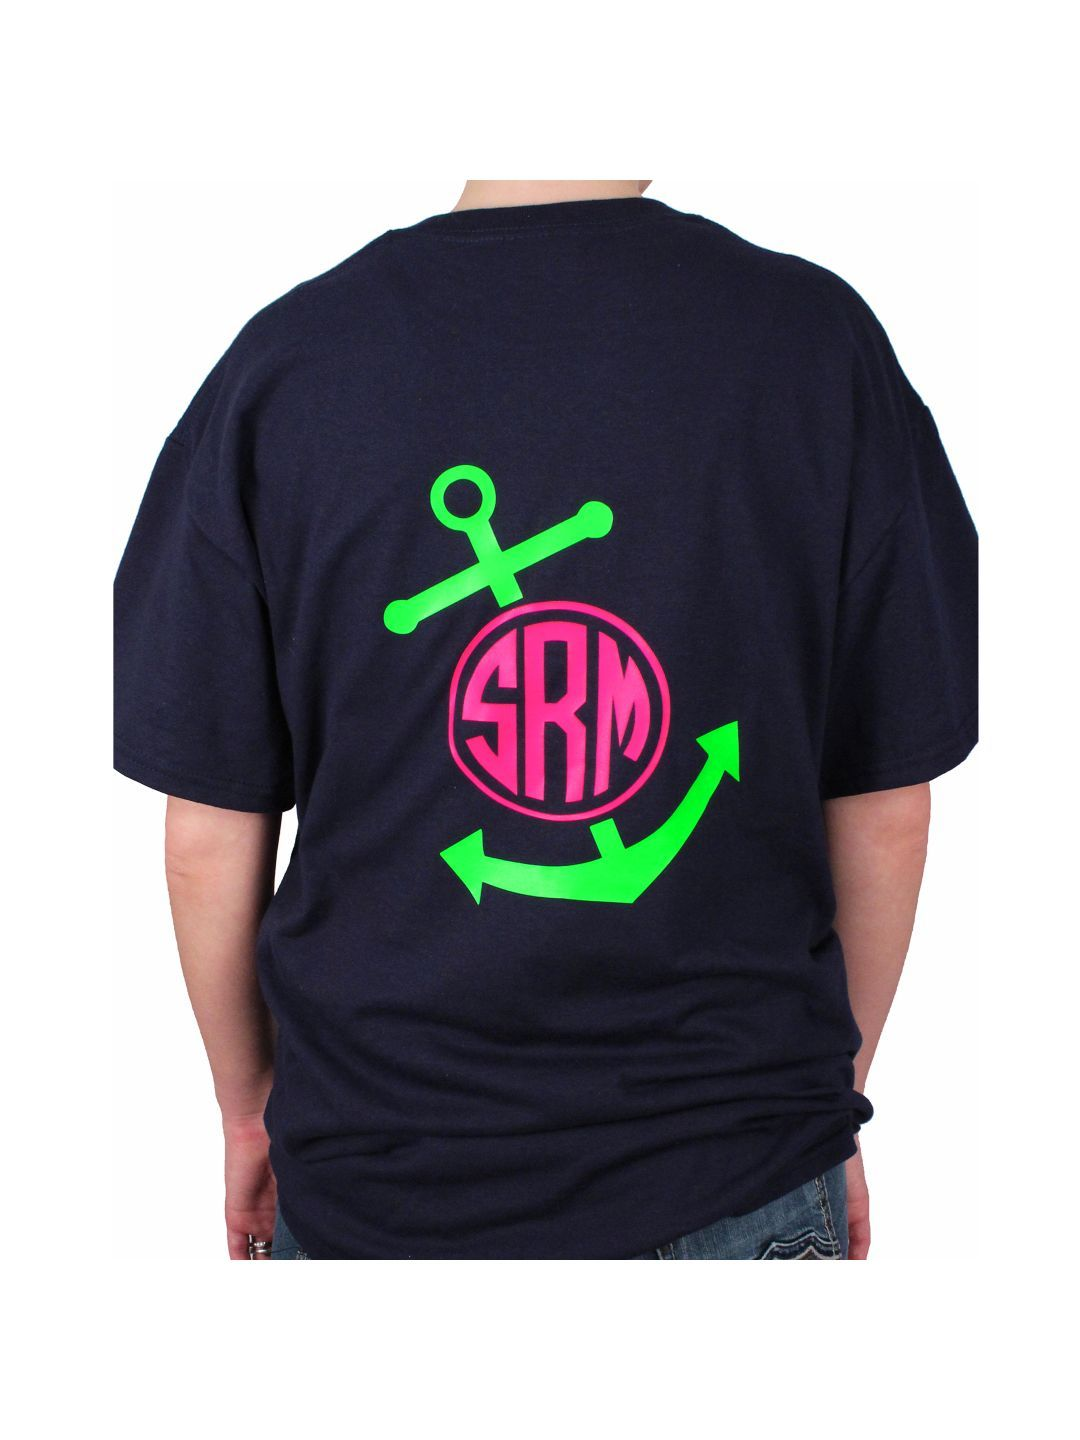 Anchor monogram short sleeve relaxed fit tshirt